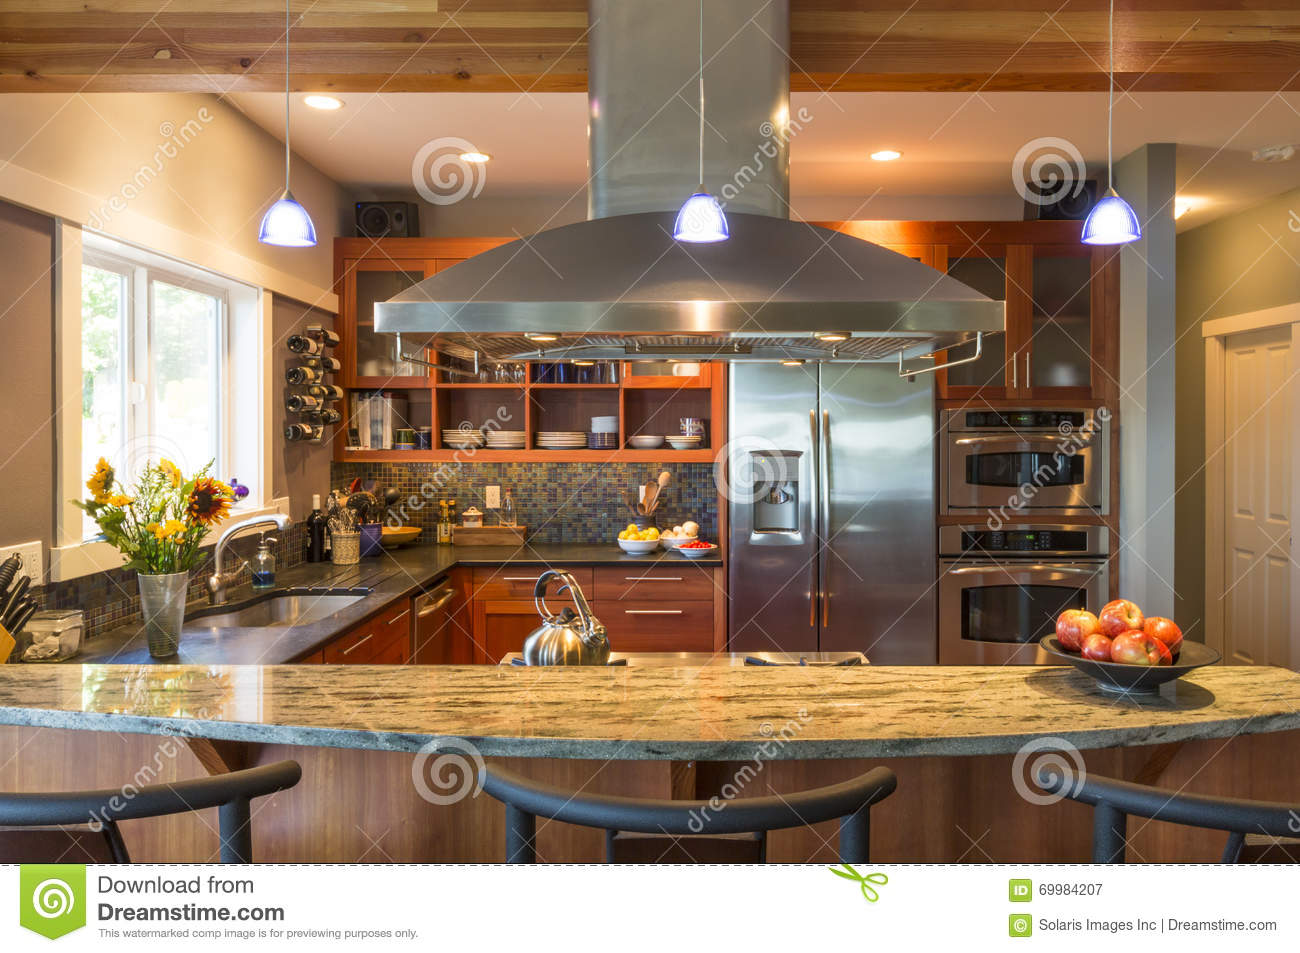 Breakfast bar in contemporary upscale home kitchen interior with granite countertops, vent hood and accent lighting